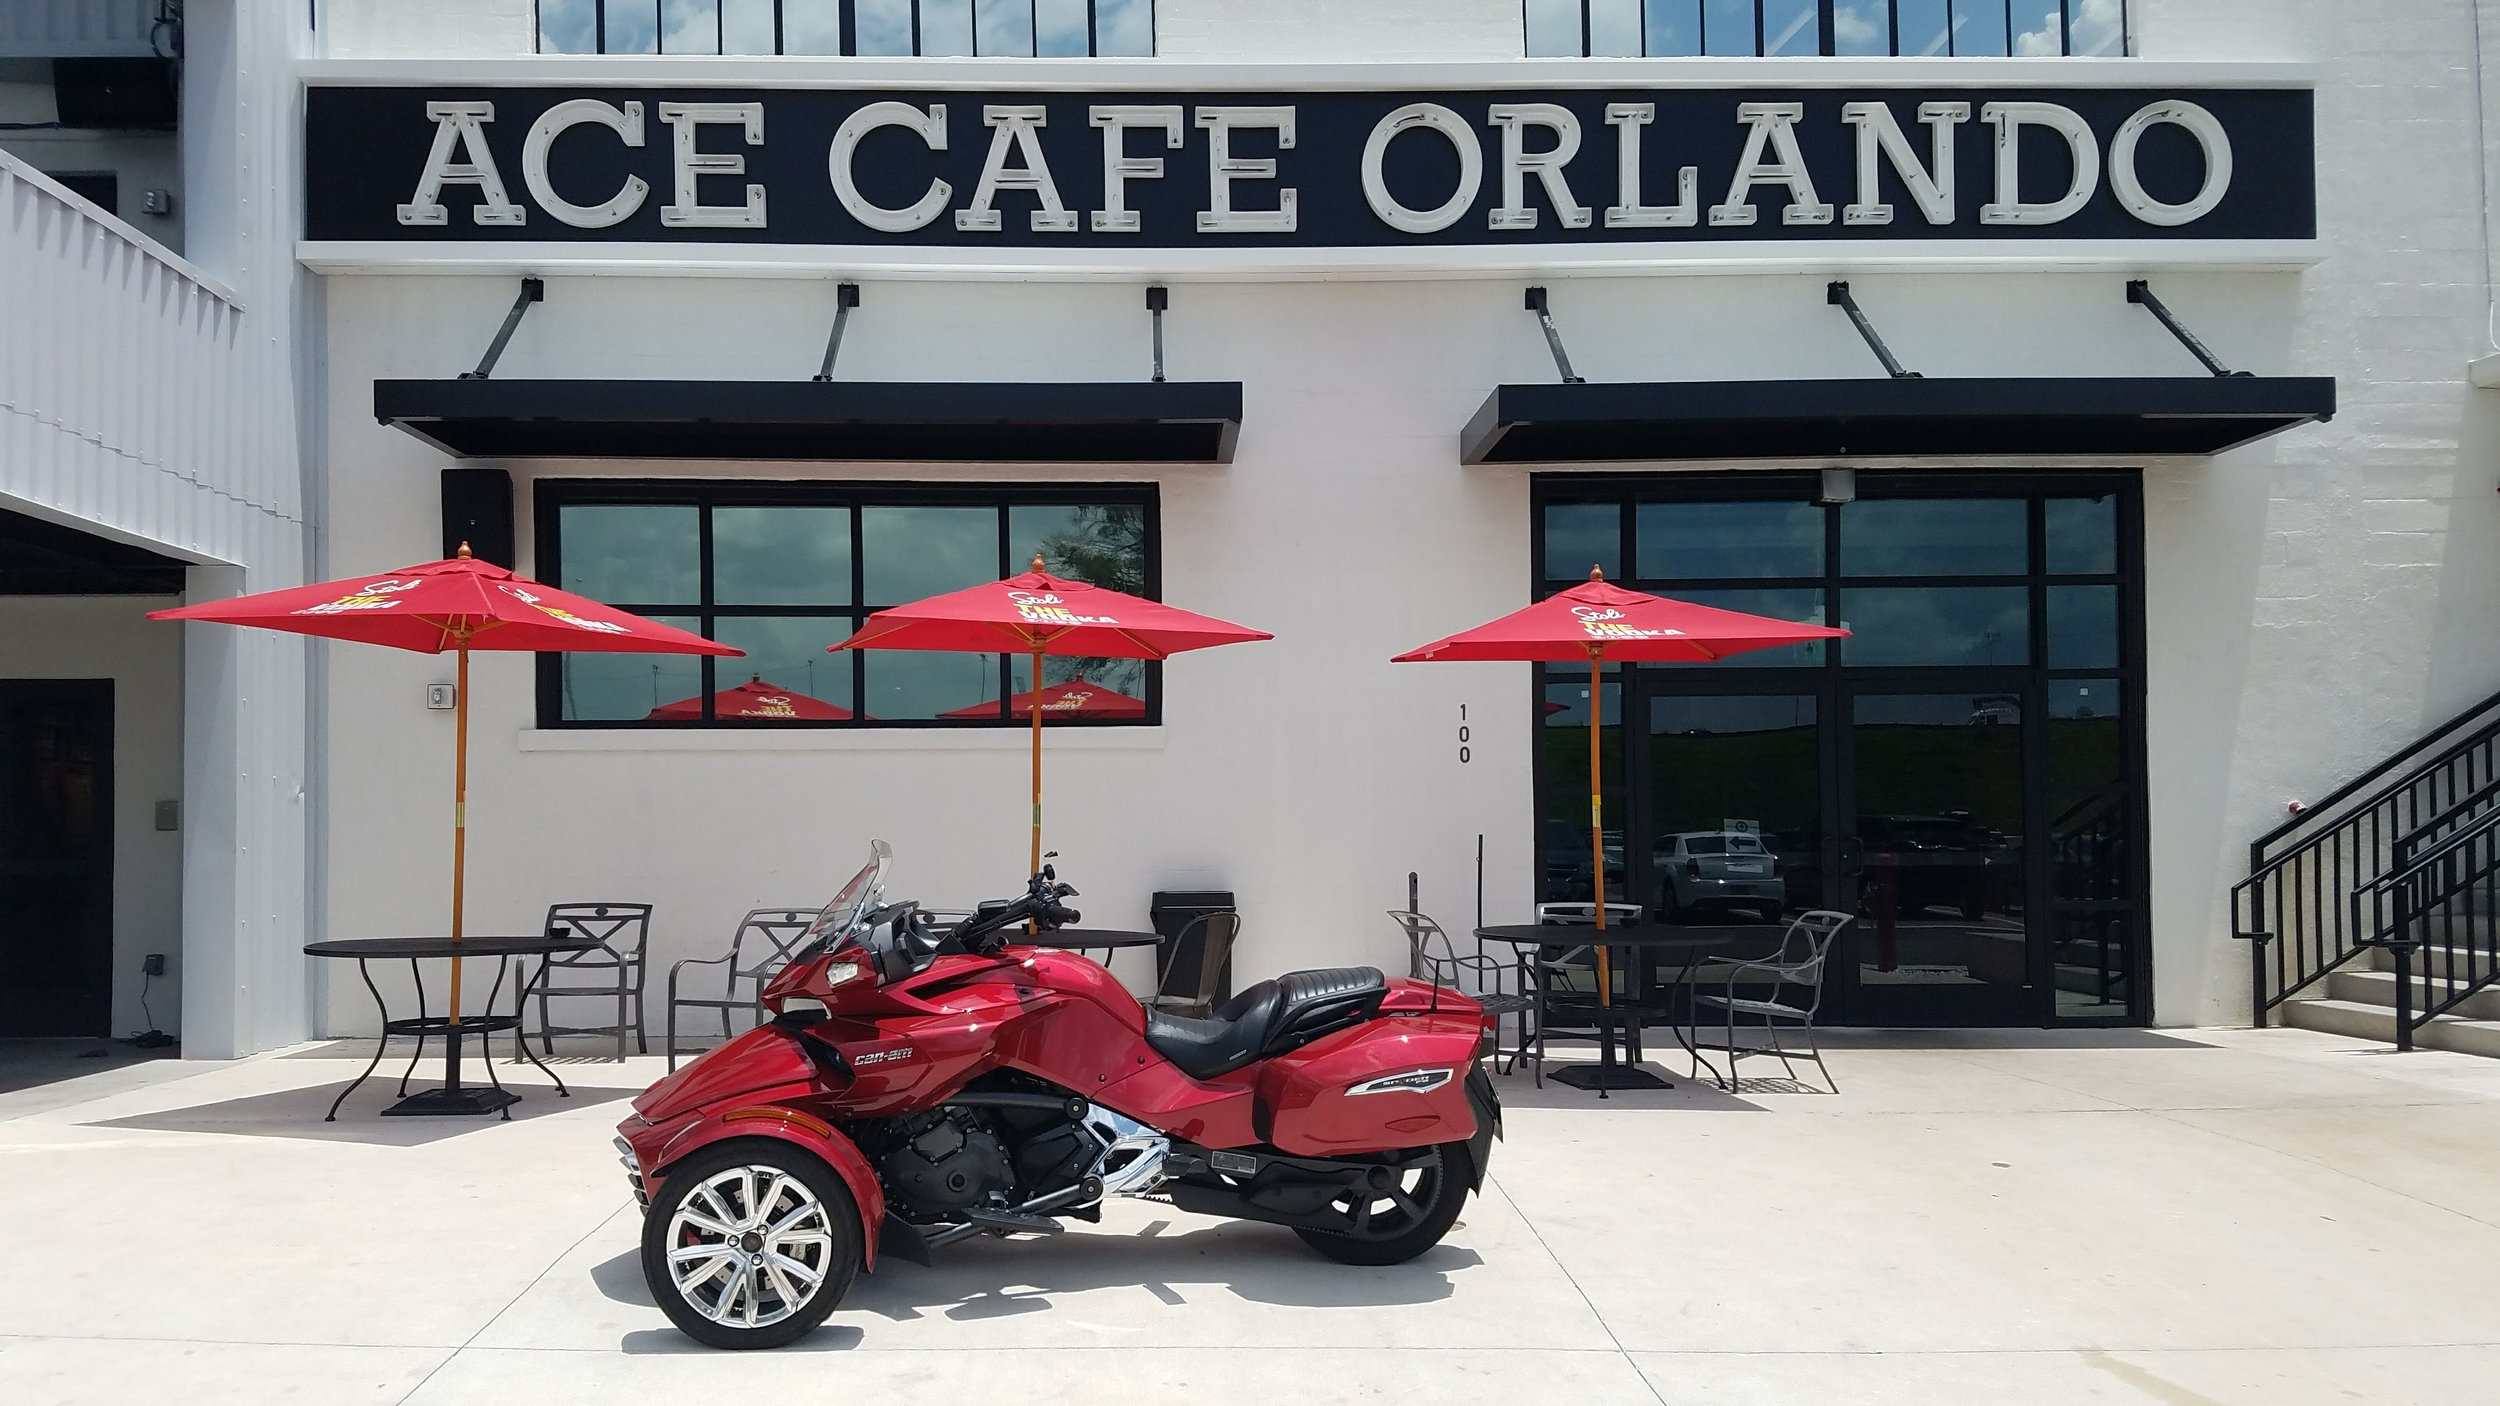 Click image to view more about Ace Cafe